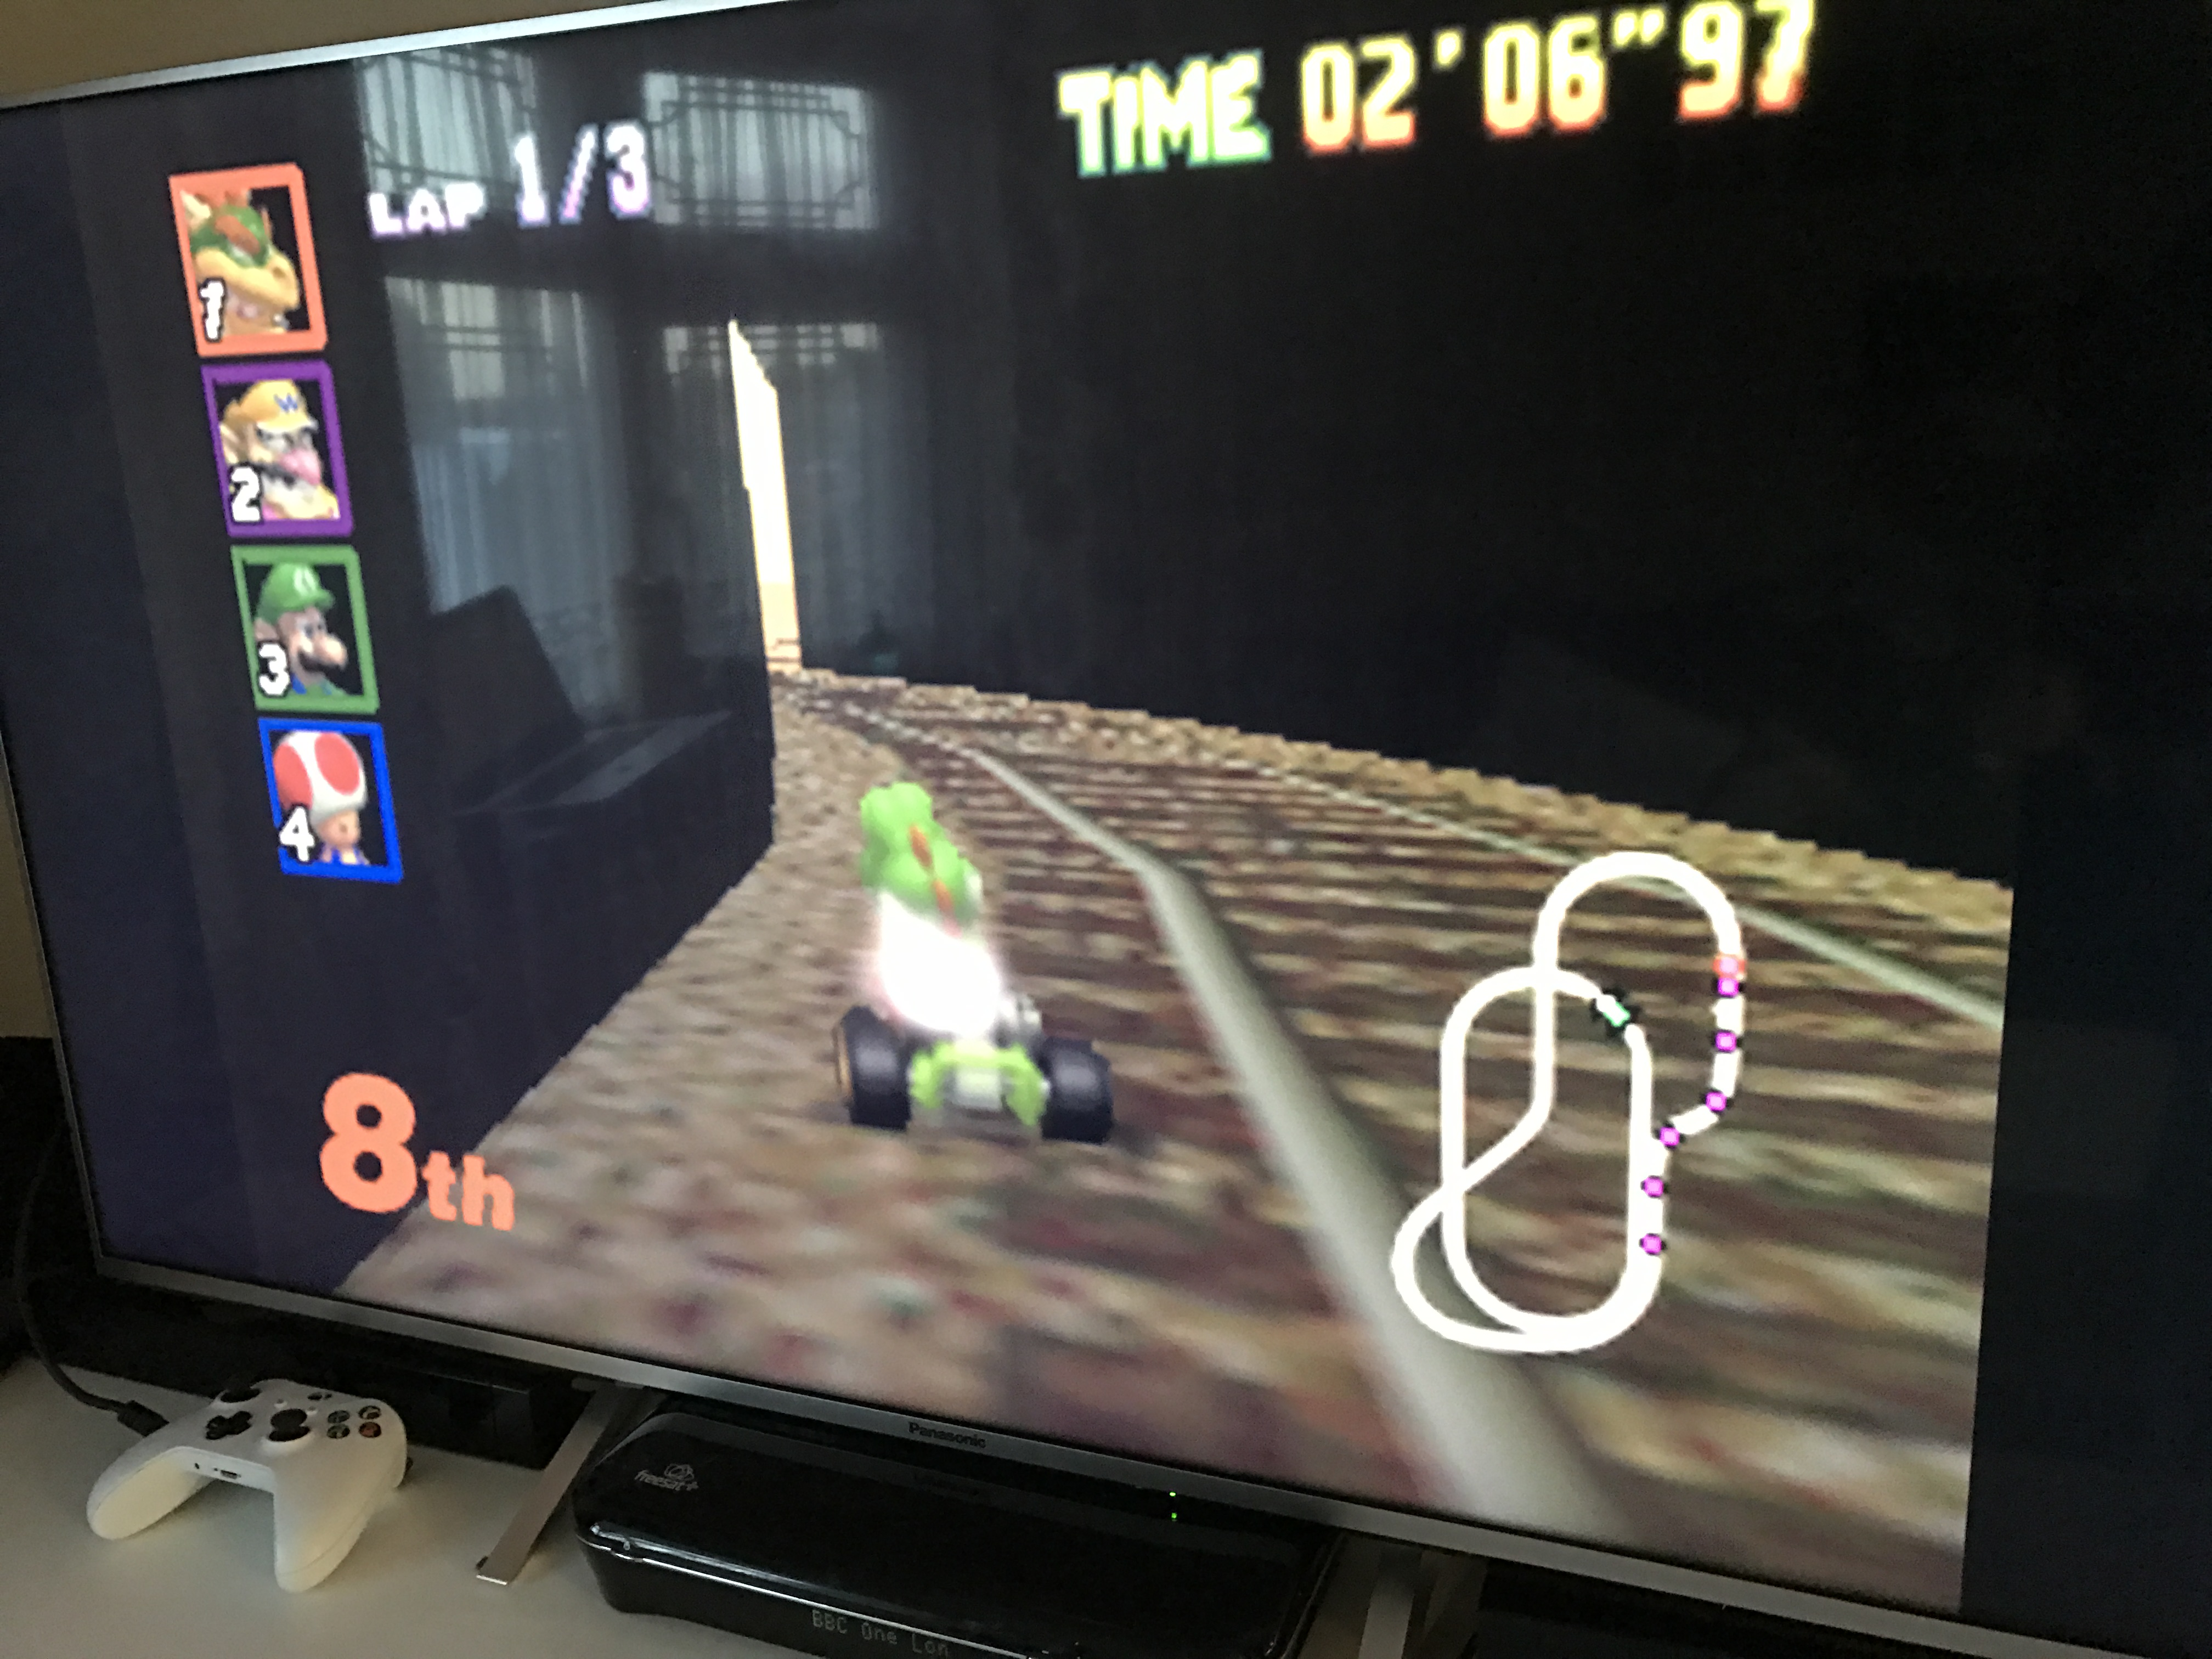 The Retropie thread - use a Raspberry Pi for the ultimate